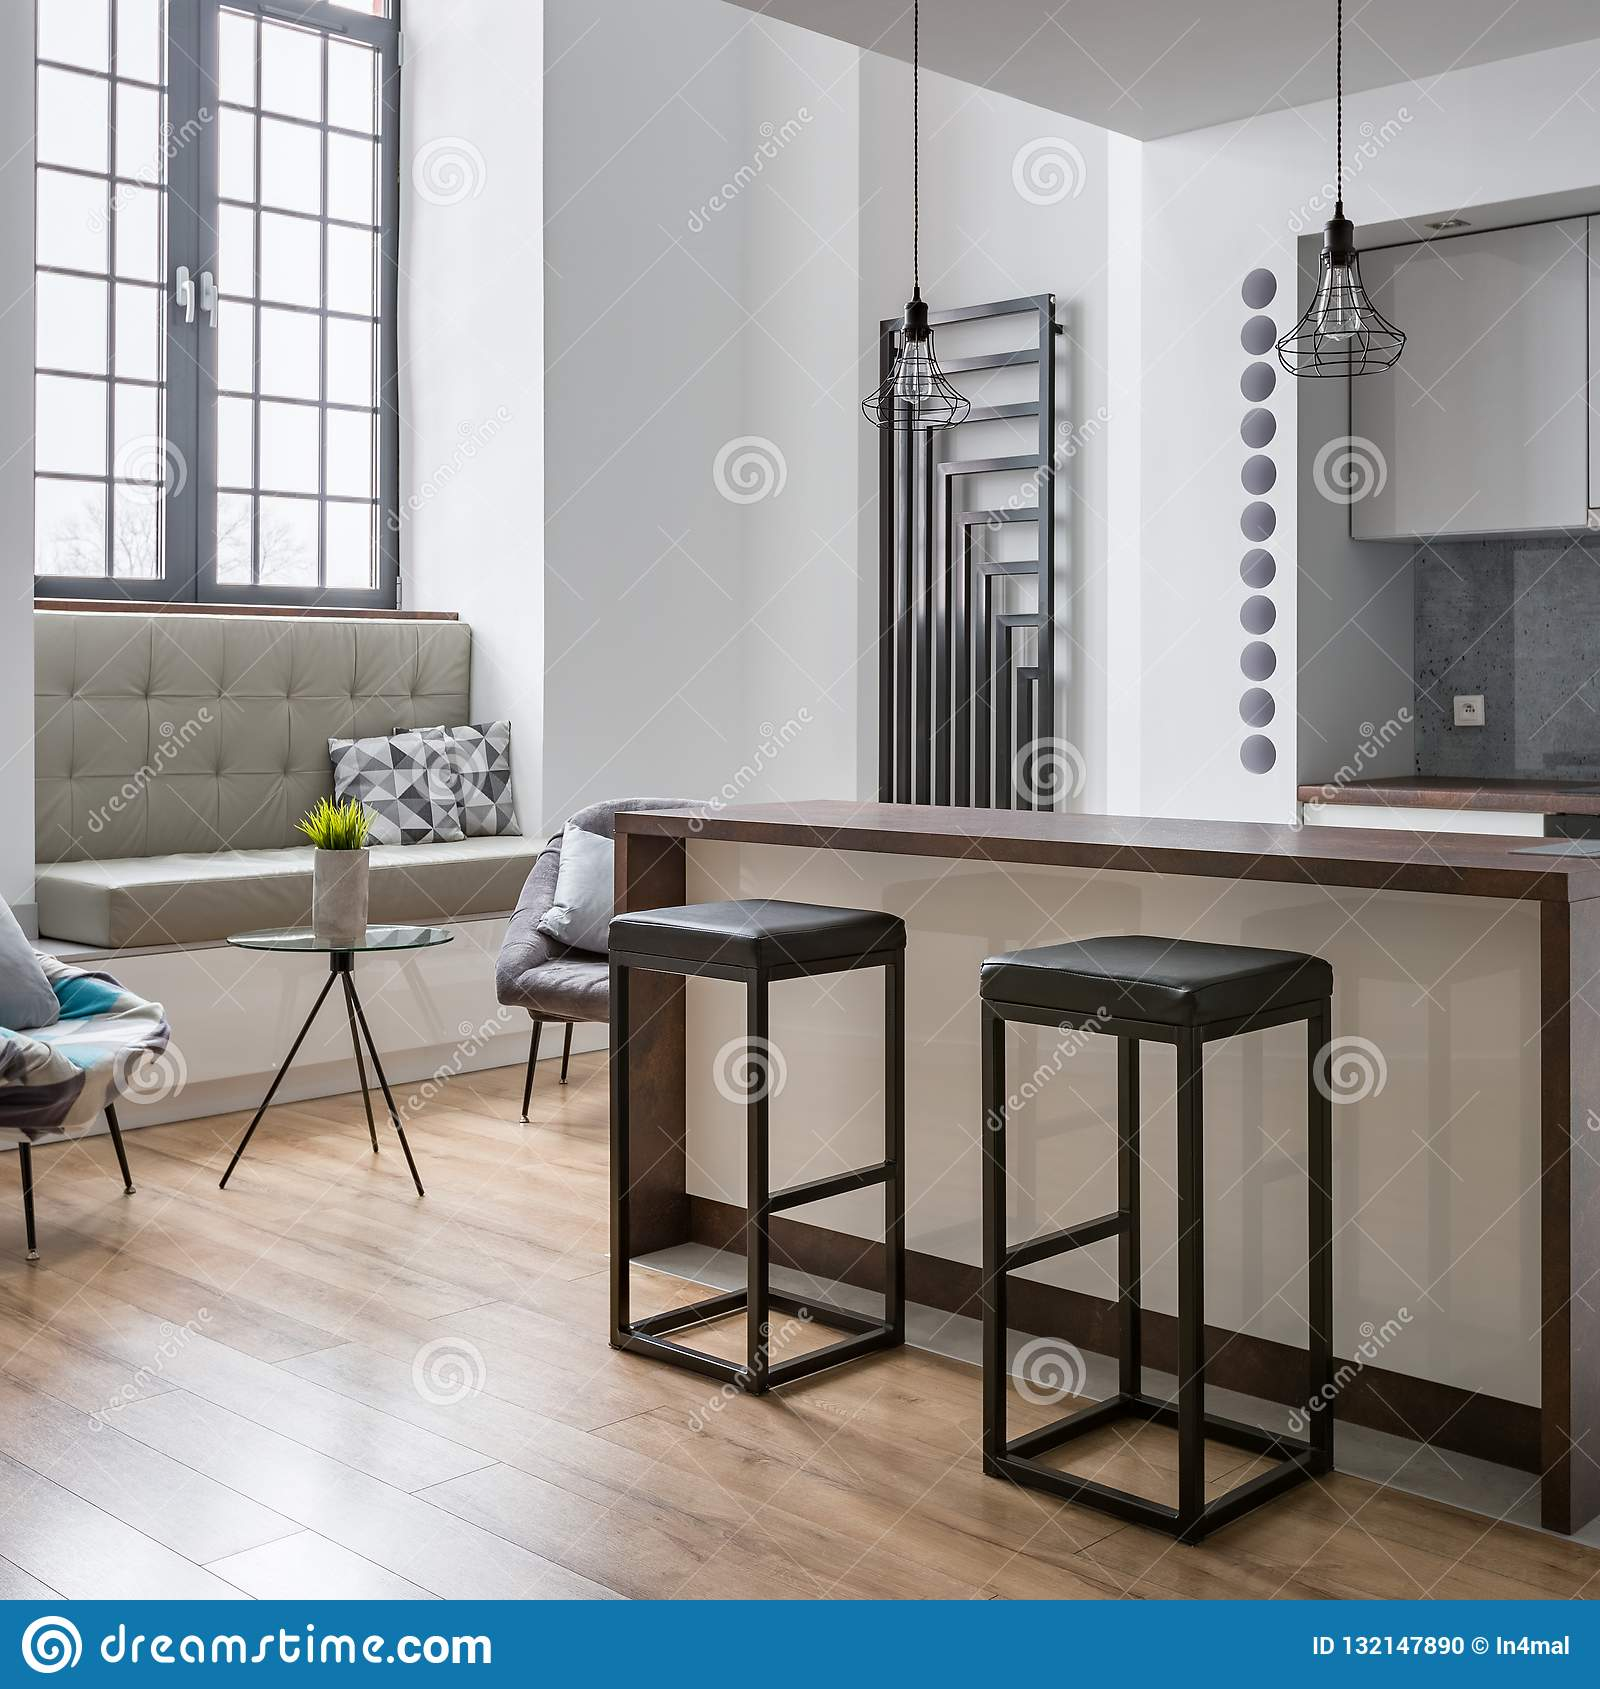 Picture of: Kitchen Island And Bar Stools Stock Photo Image Of Contemporary Heater 132147890